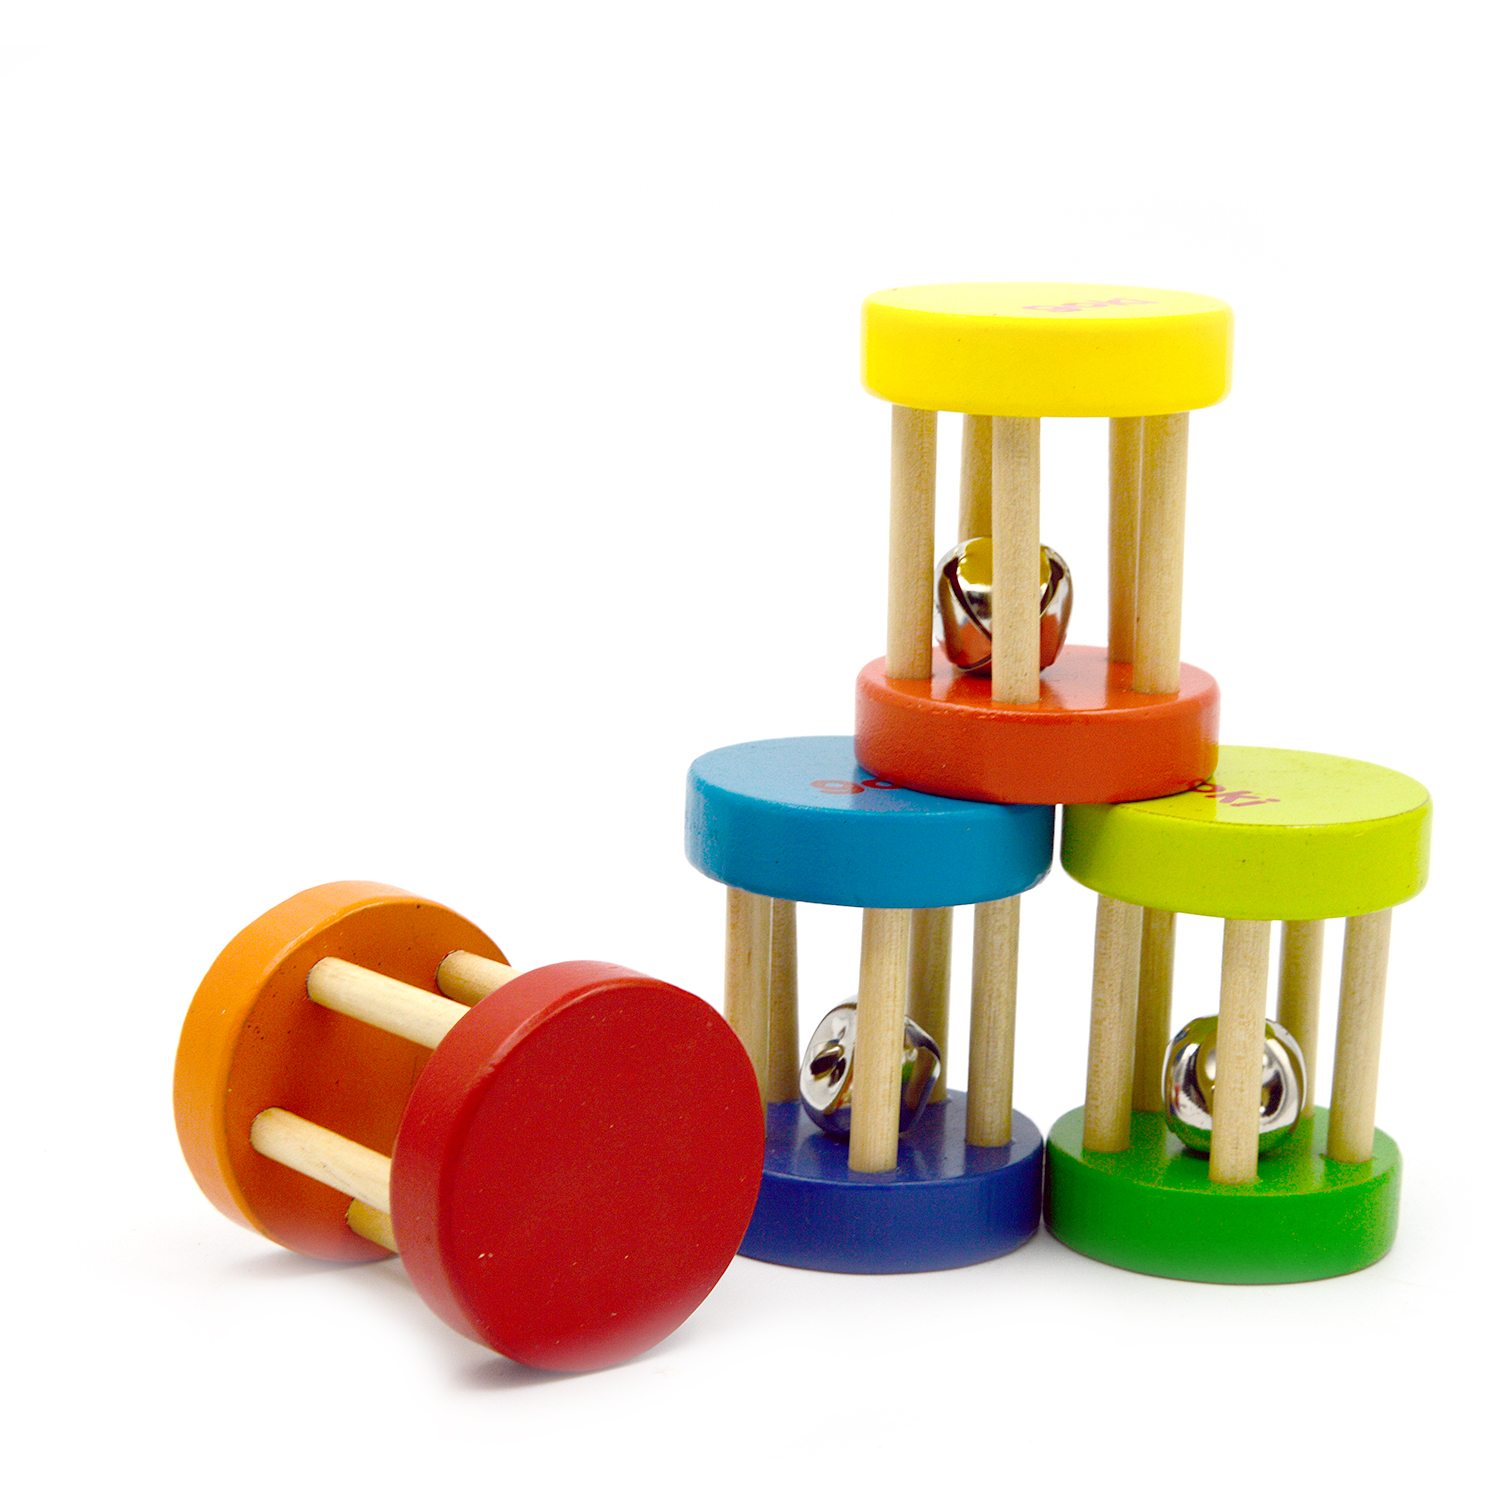 Baby 1pcs Montessori Wooden Cage Rattles Toy Musical Hand Bell Instruments Shaking Handbell Toys Intellectual Educational Toys